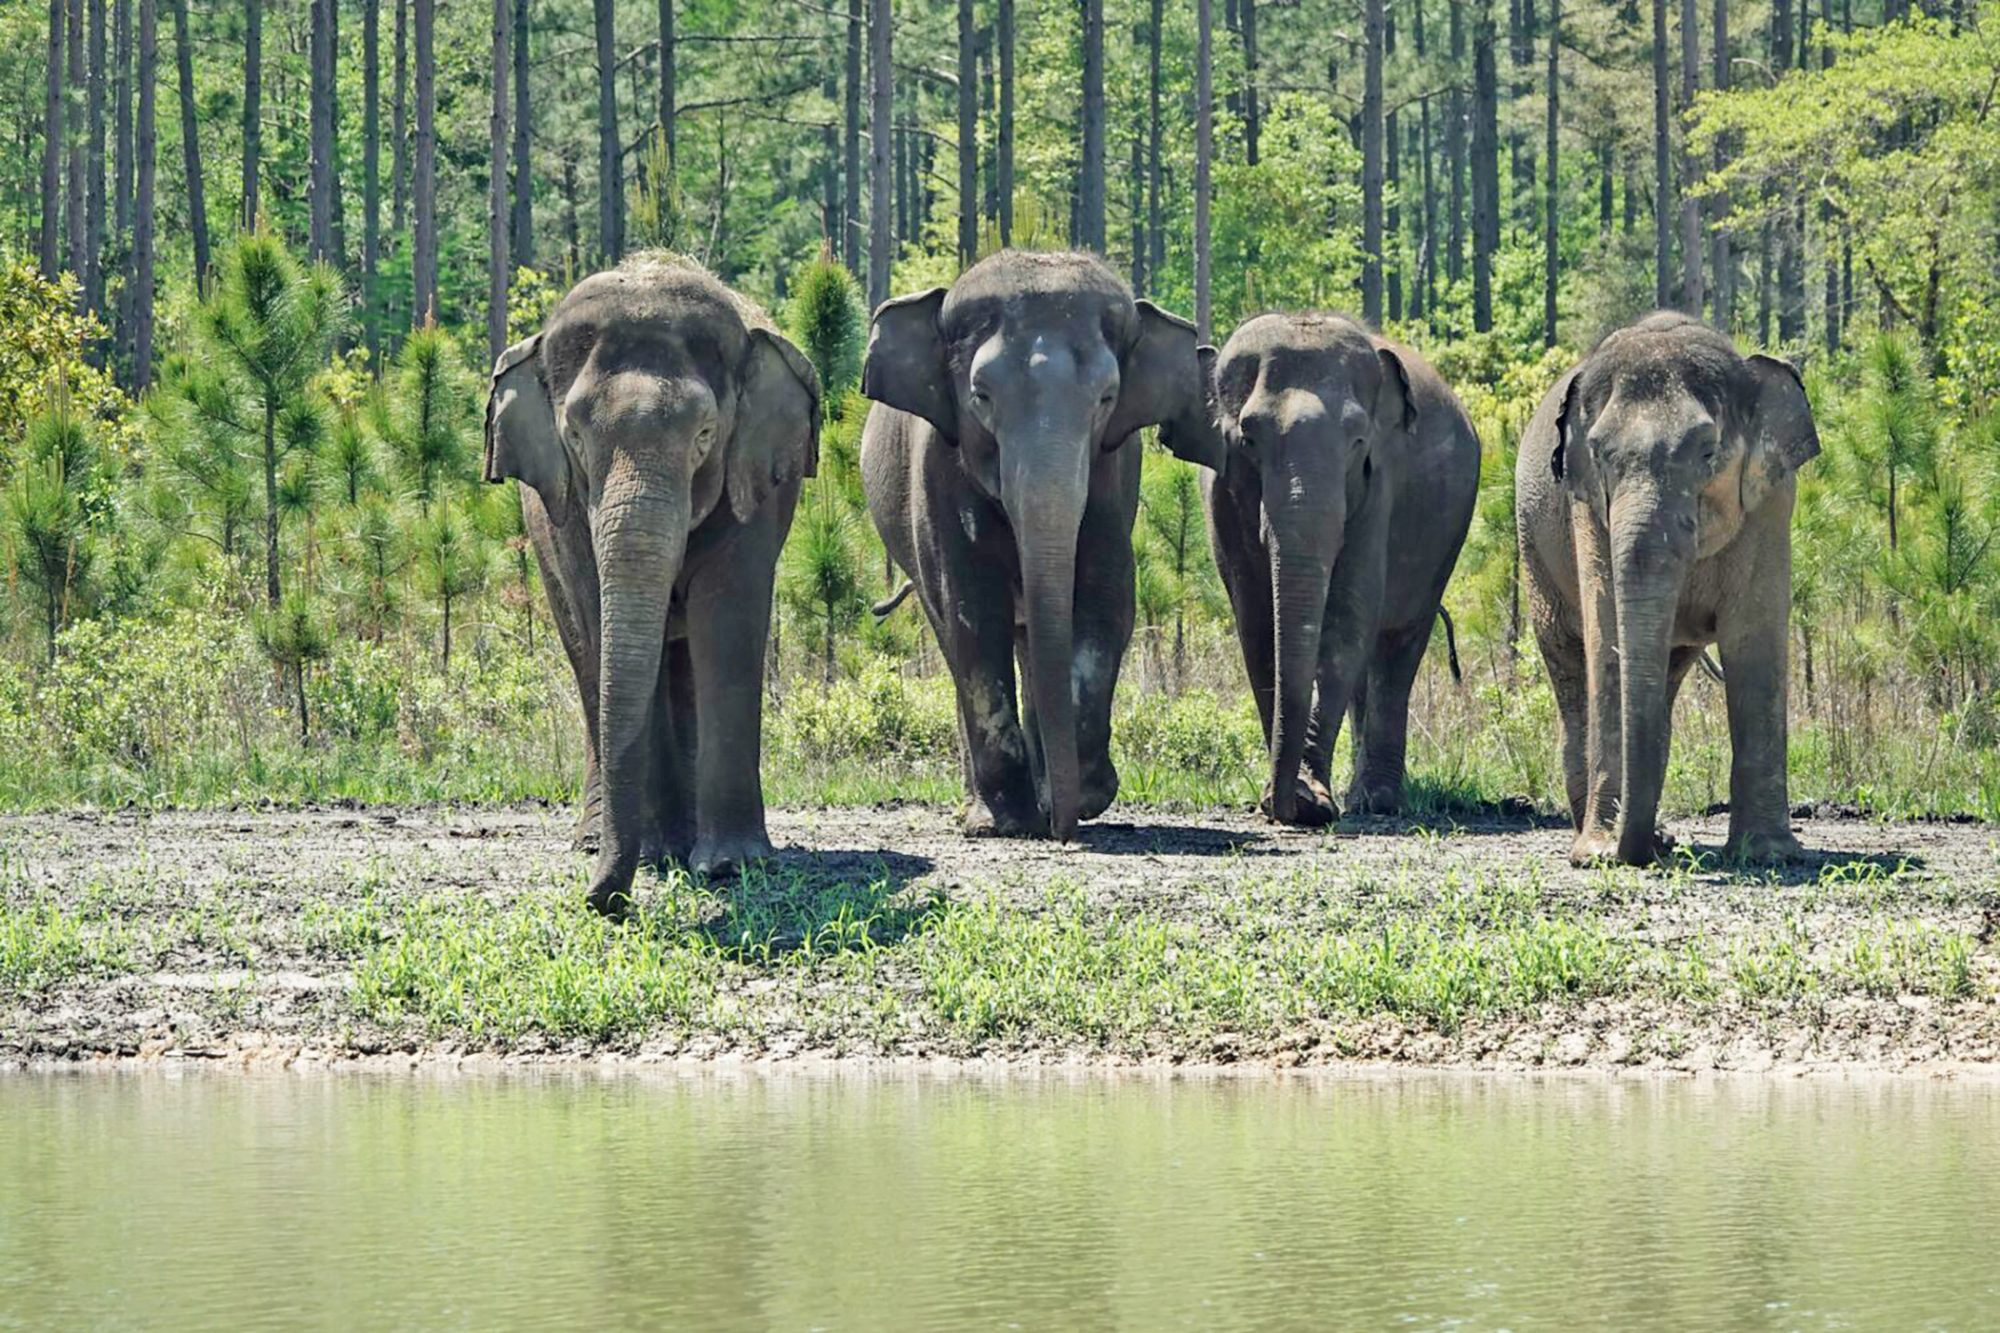 Former Circus Elephants Find New Home at North Florida Sanctuary